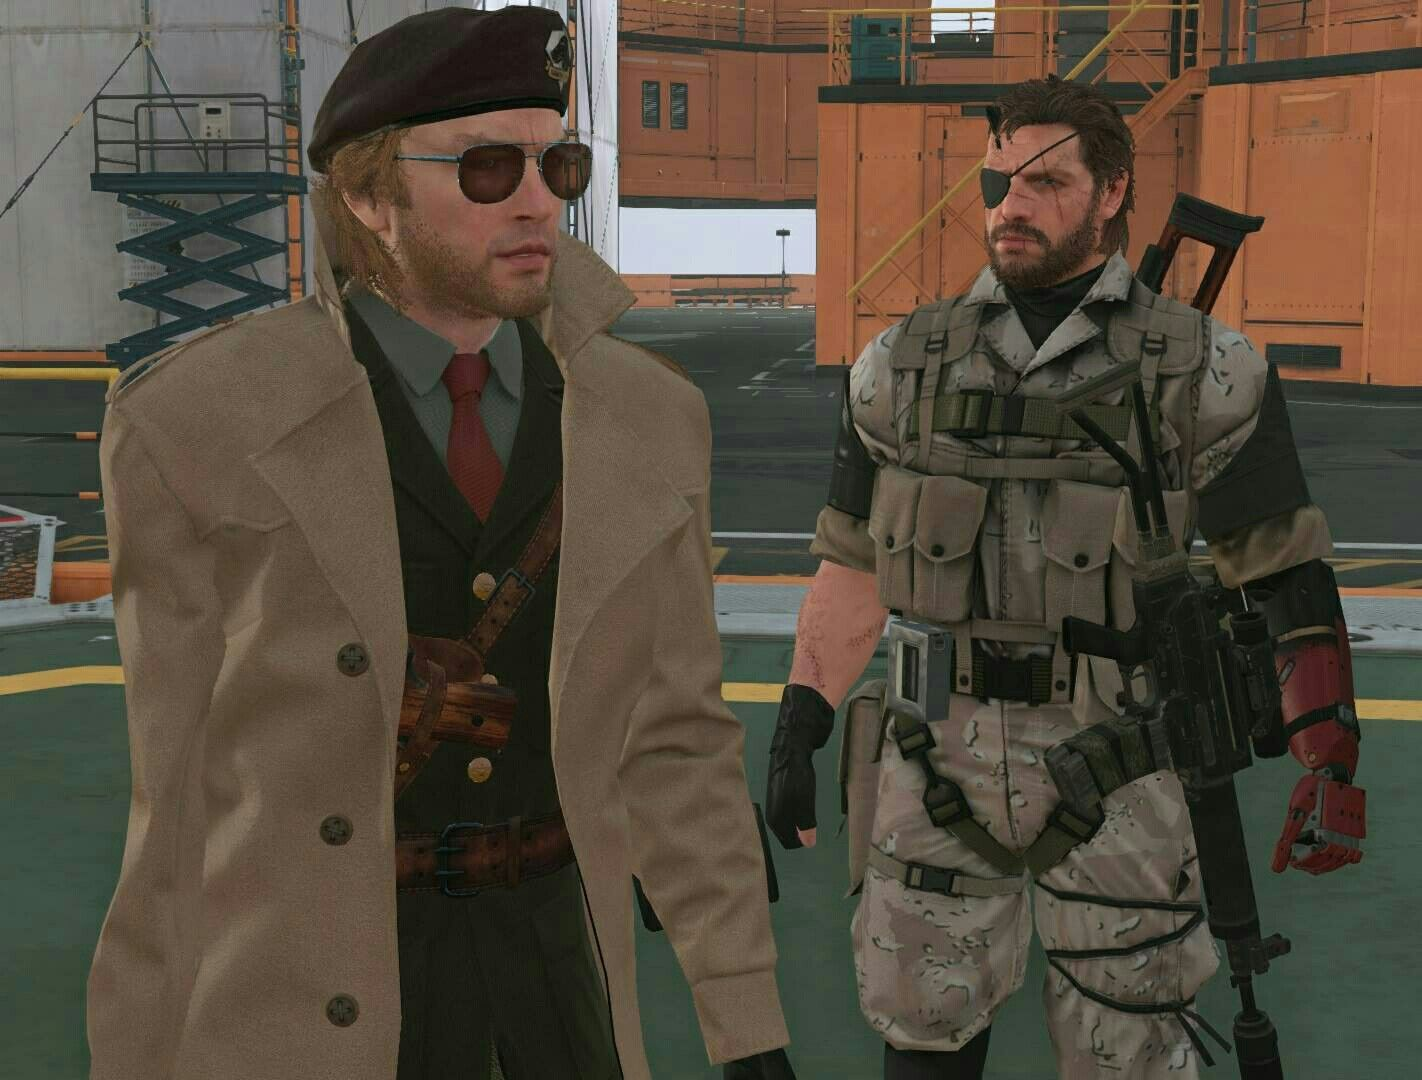 Kaz Metal Gear With tenor, maker of gif keyboard, add popular kazuhira miller animated gifs to your conversations. android iphone wallpaper hd download